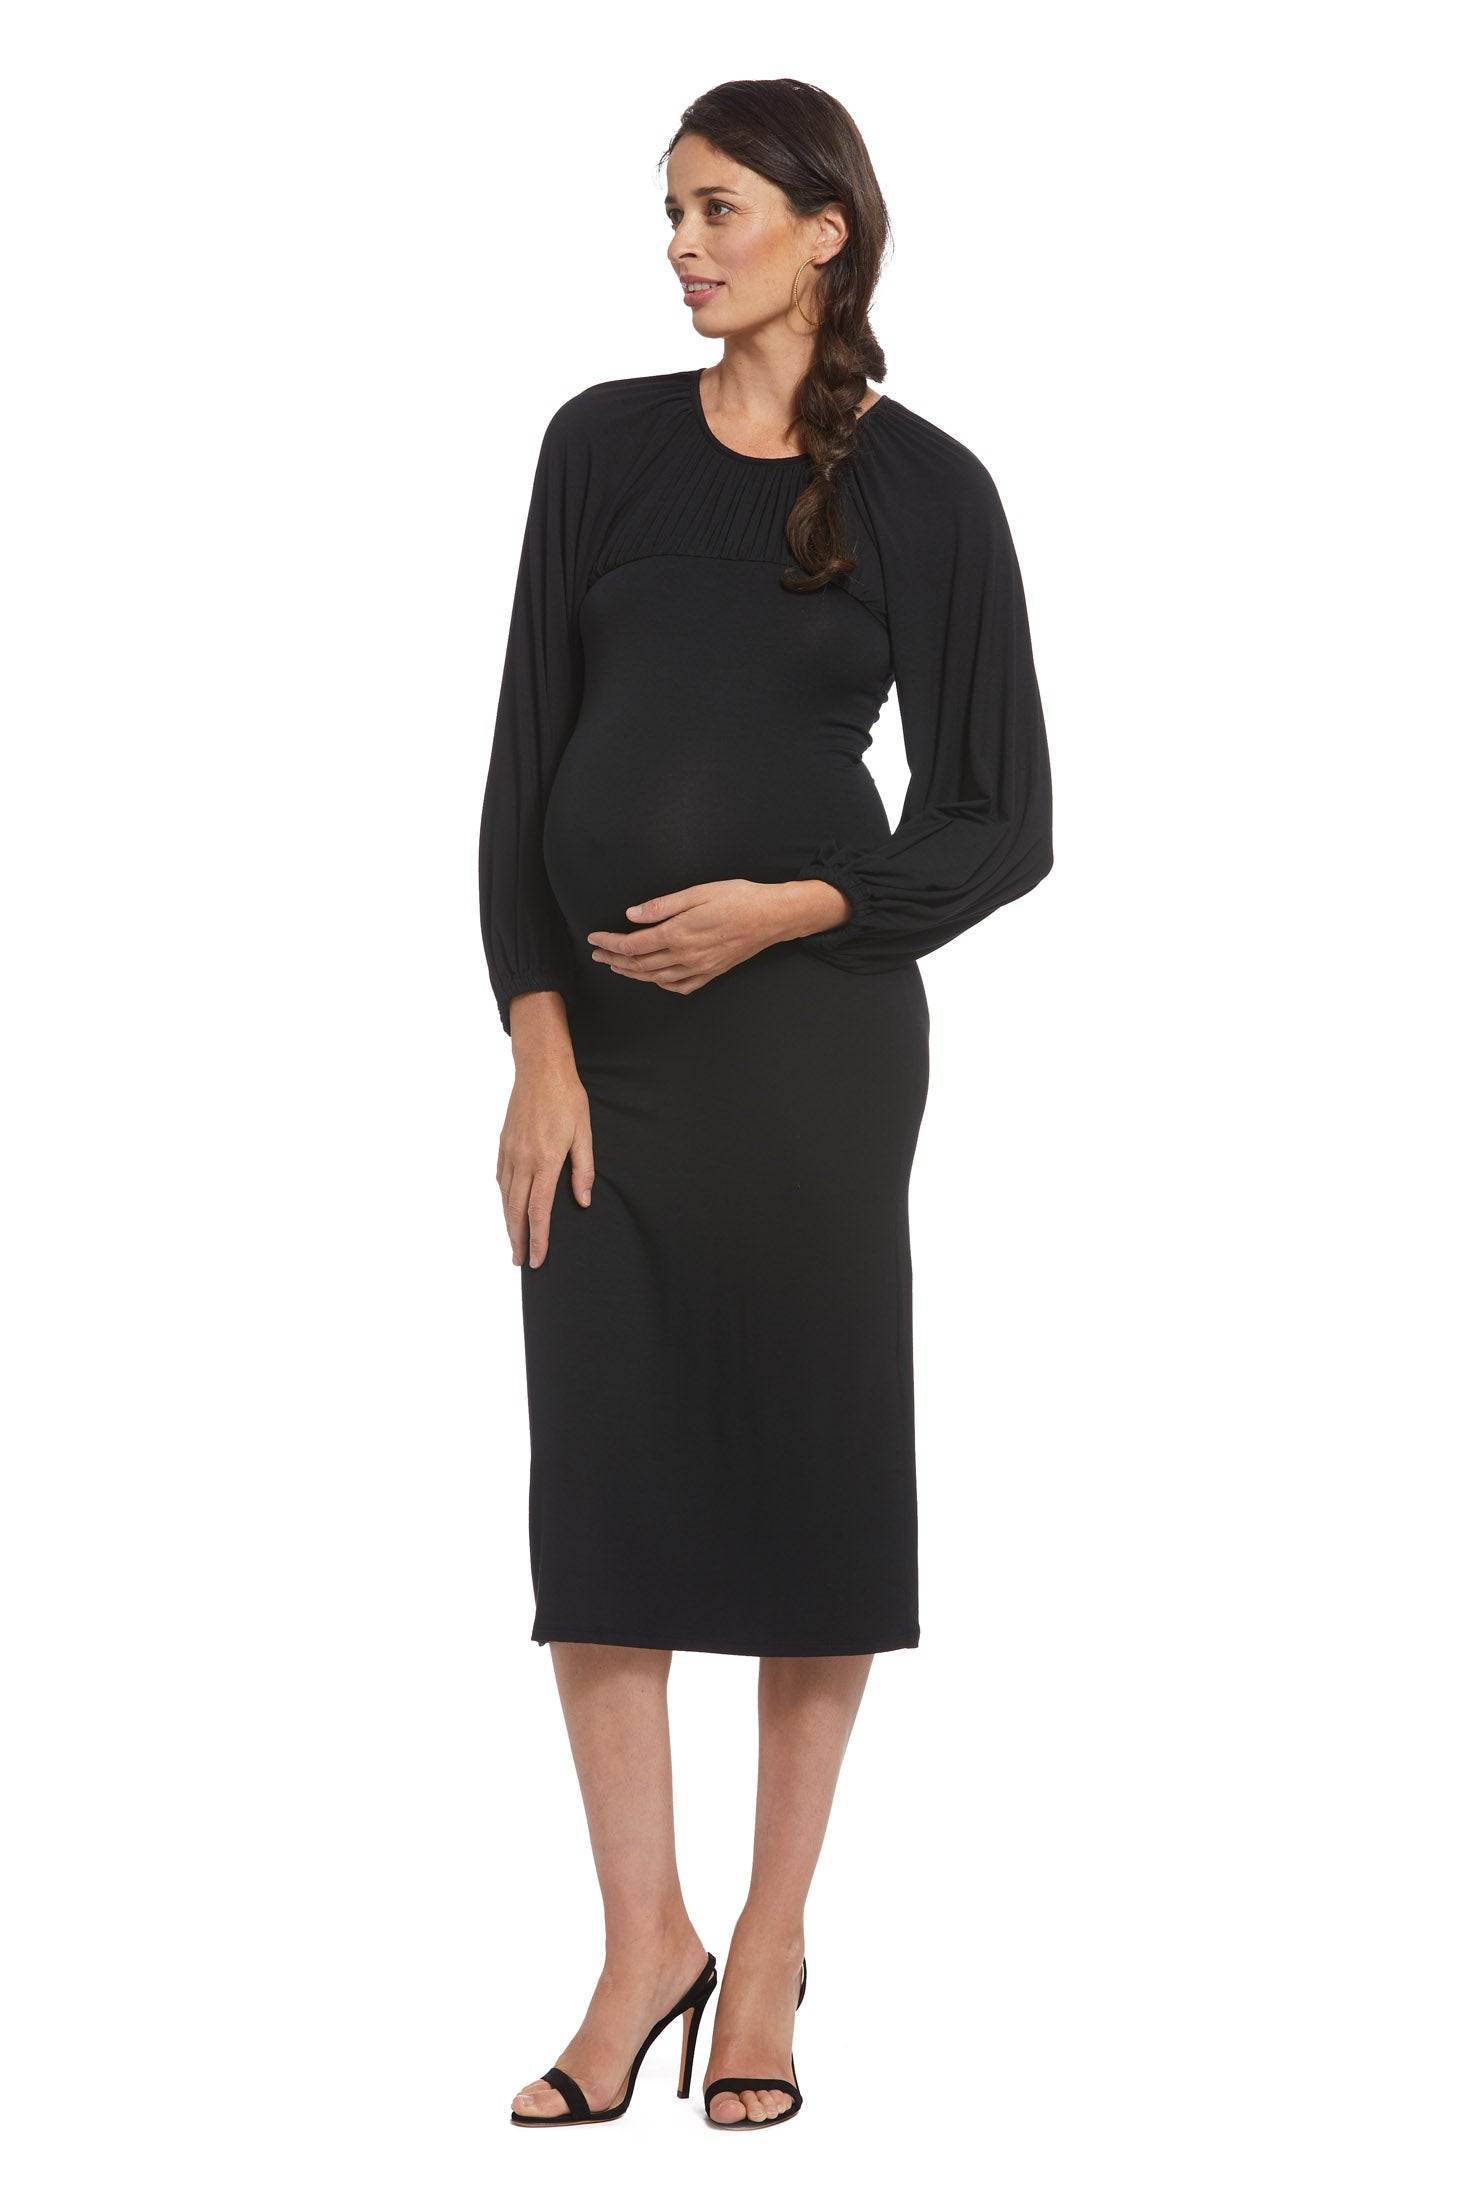 Alix Dress - Black, Maternity